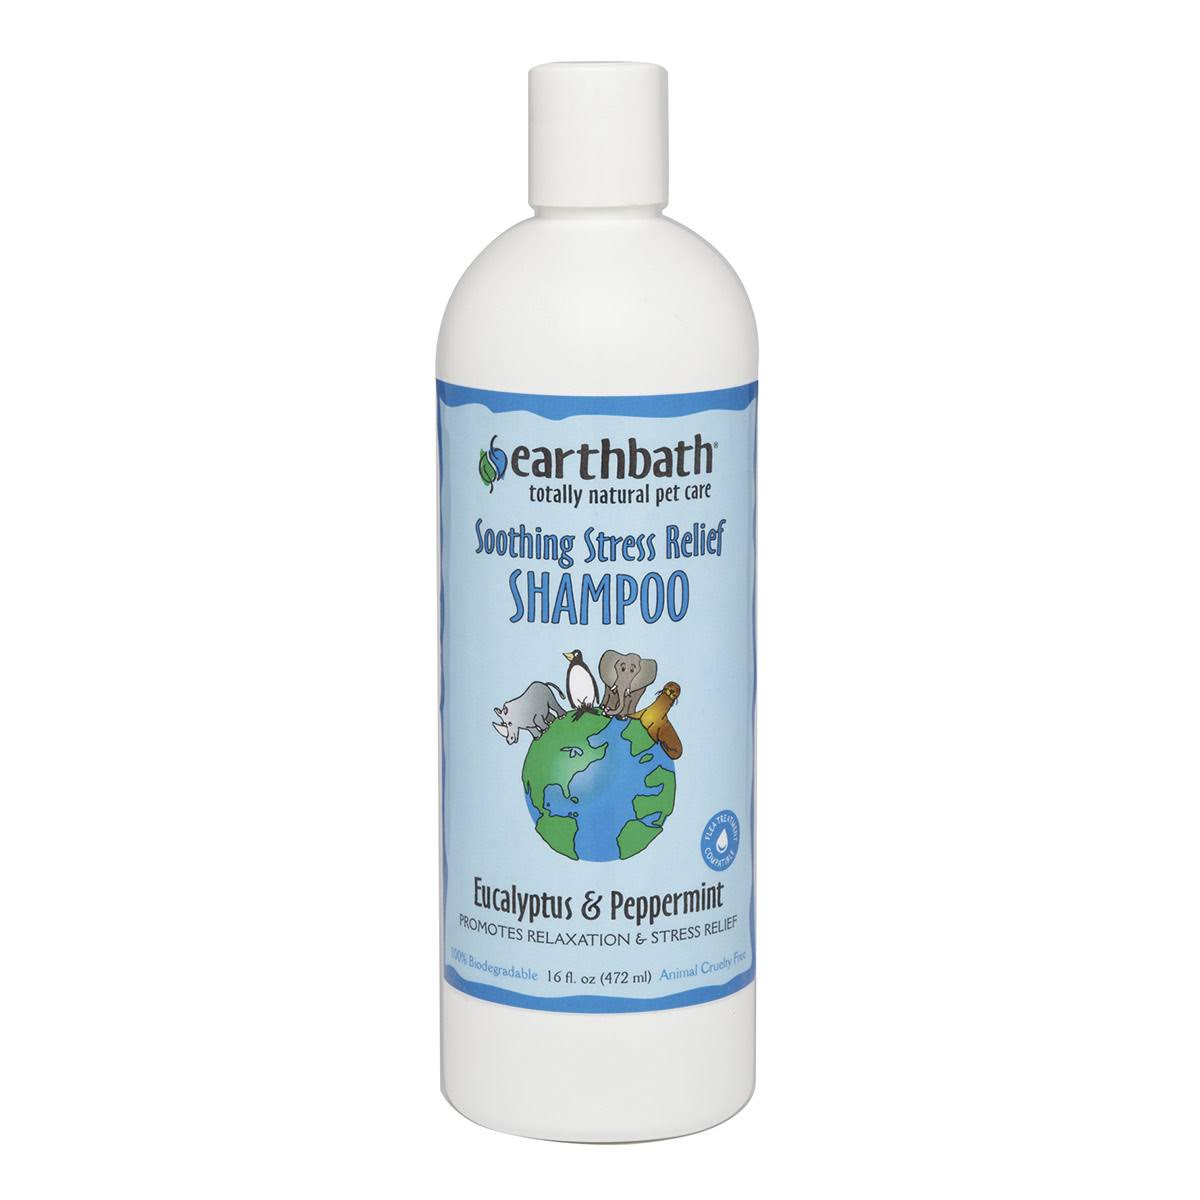 Earthbath All Natural Pet Shampoo - Eucalyptus & Peppermint, 16 oz